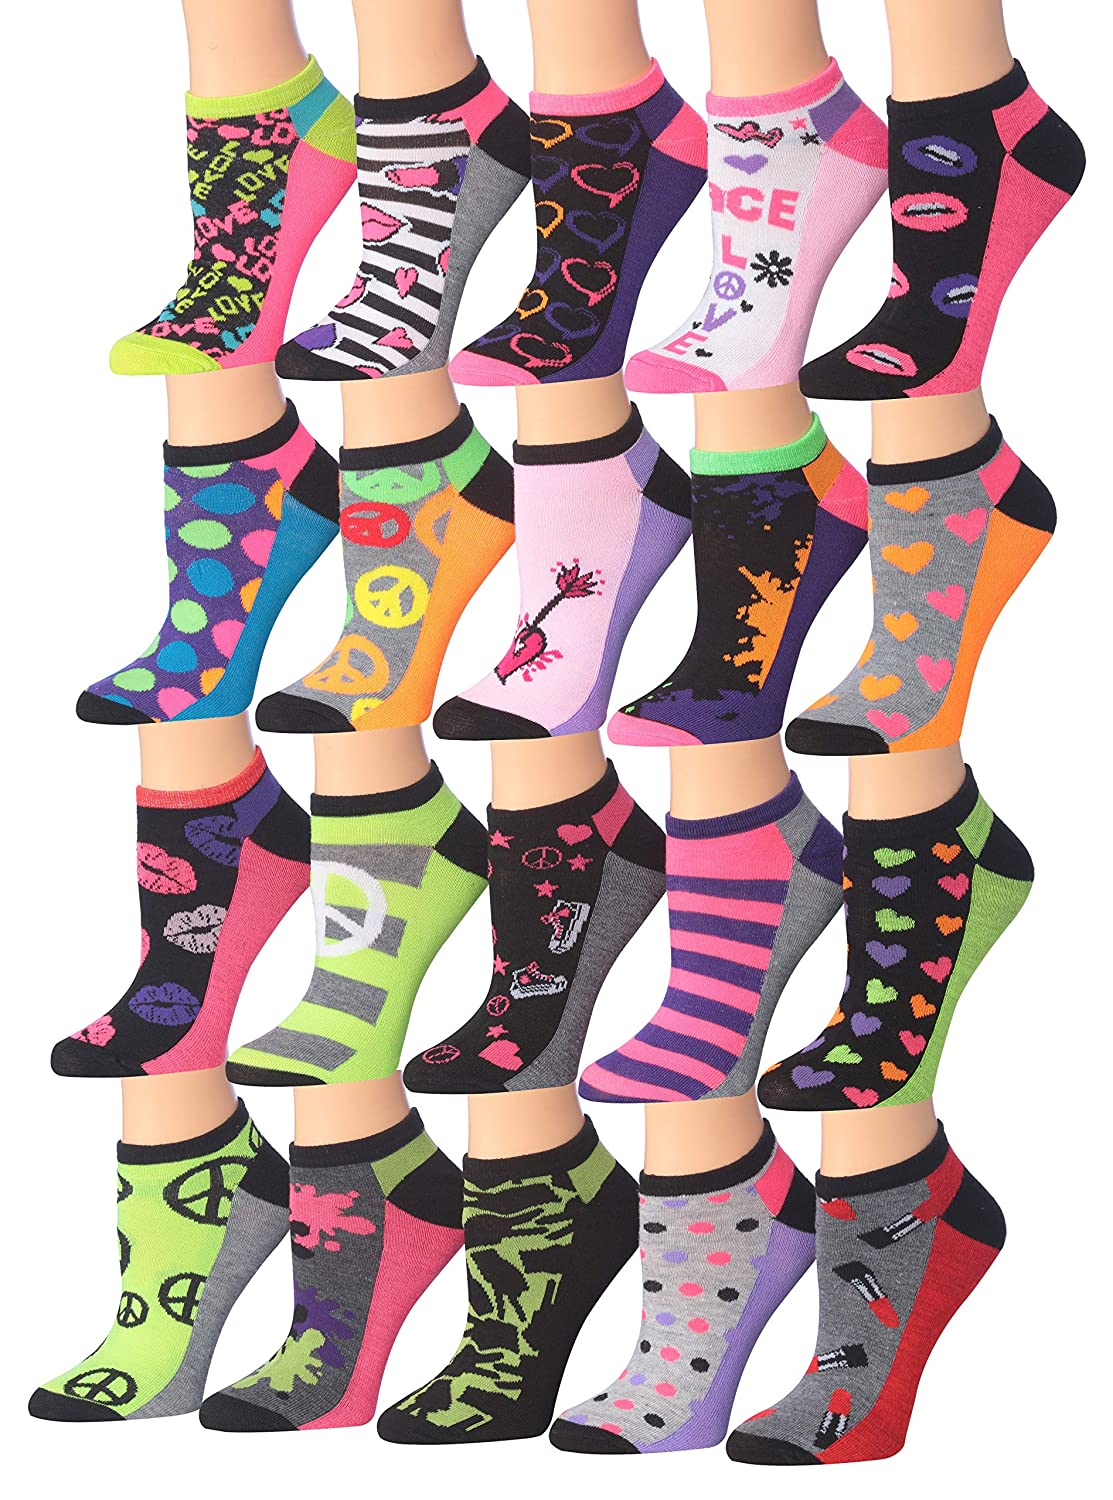 Wl14ab Tipi Toe Women's 20 Pairs colorful Patterned Low Cut No Show Socks